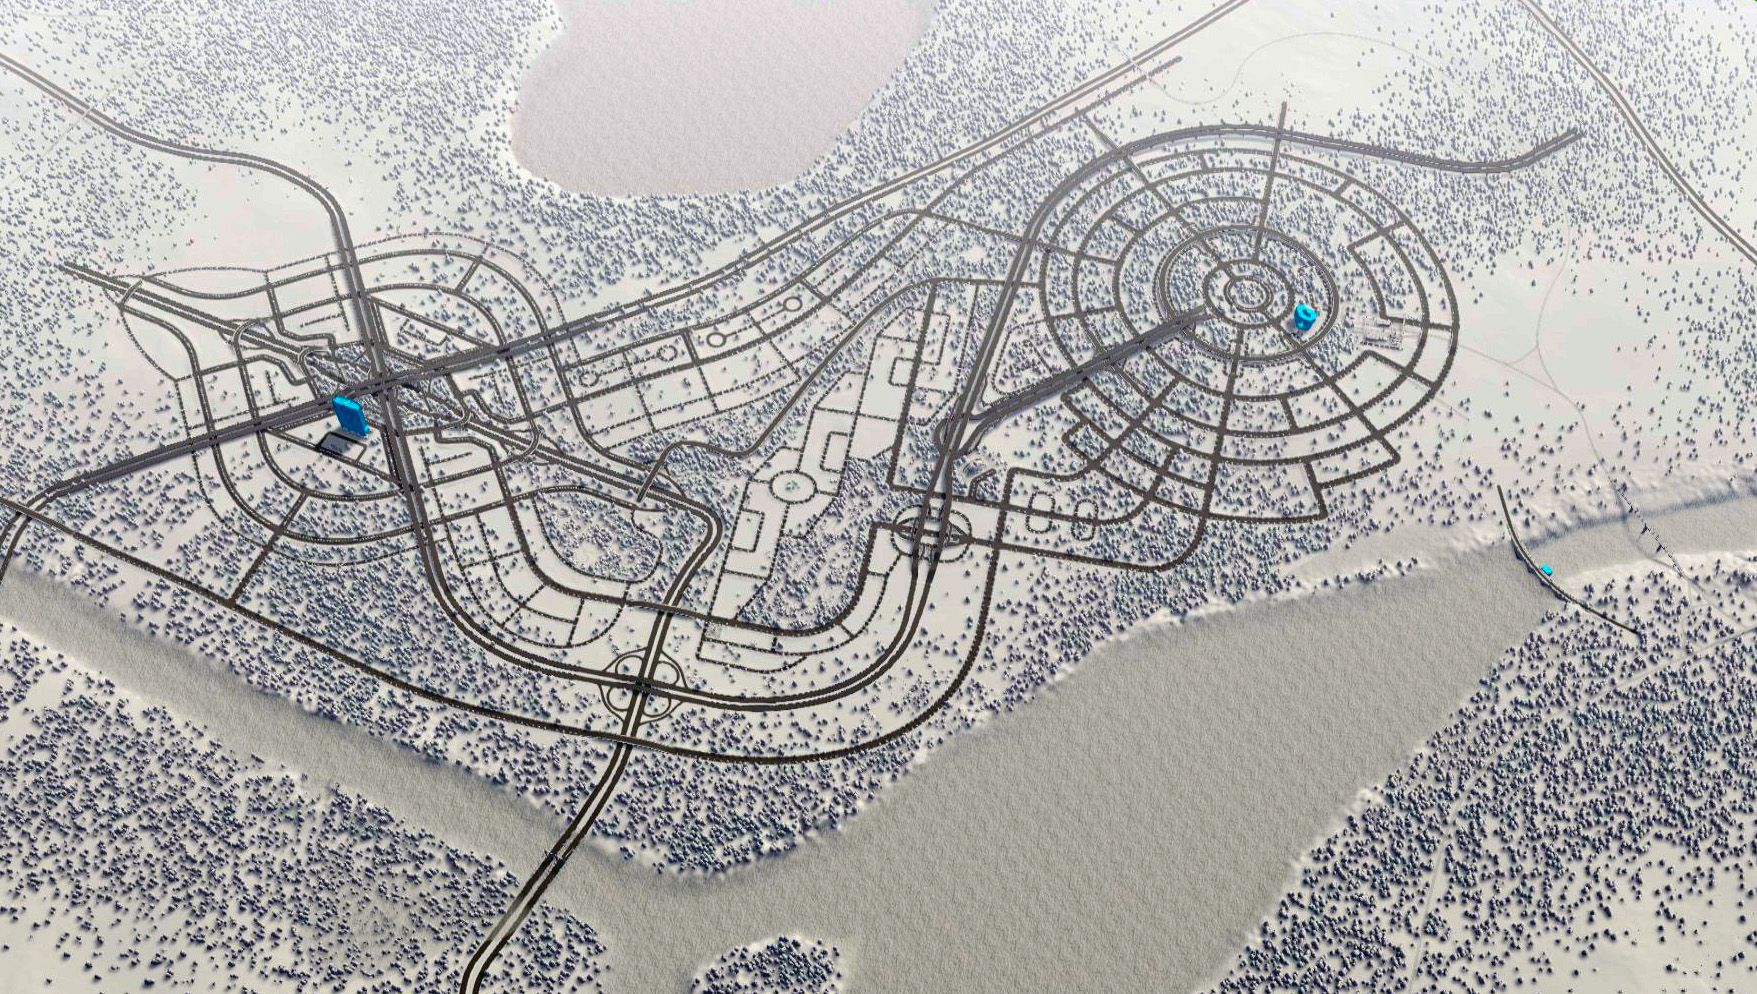 cities skylines efficient road layout - Google Search | City ... on new york cities maps, europe cities maps, florida cities maps, texas cities maps, usa cities maps,